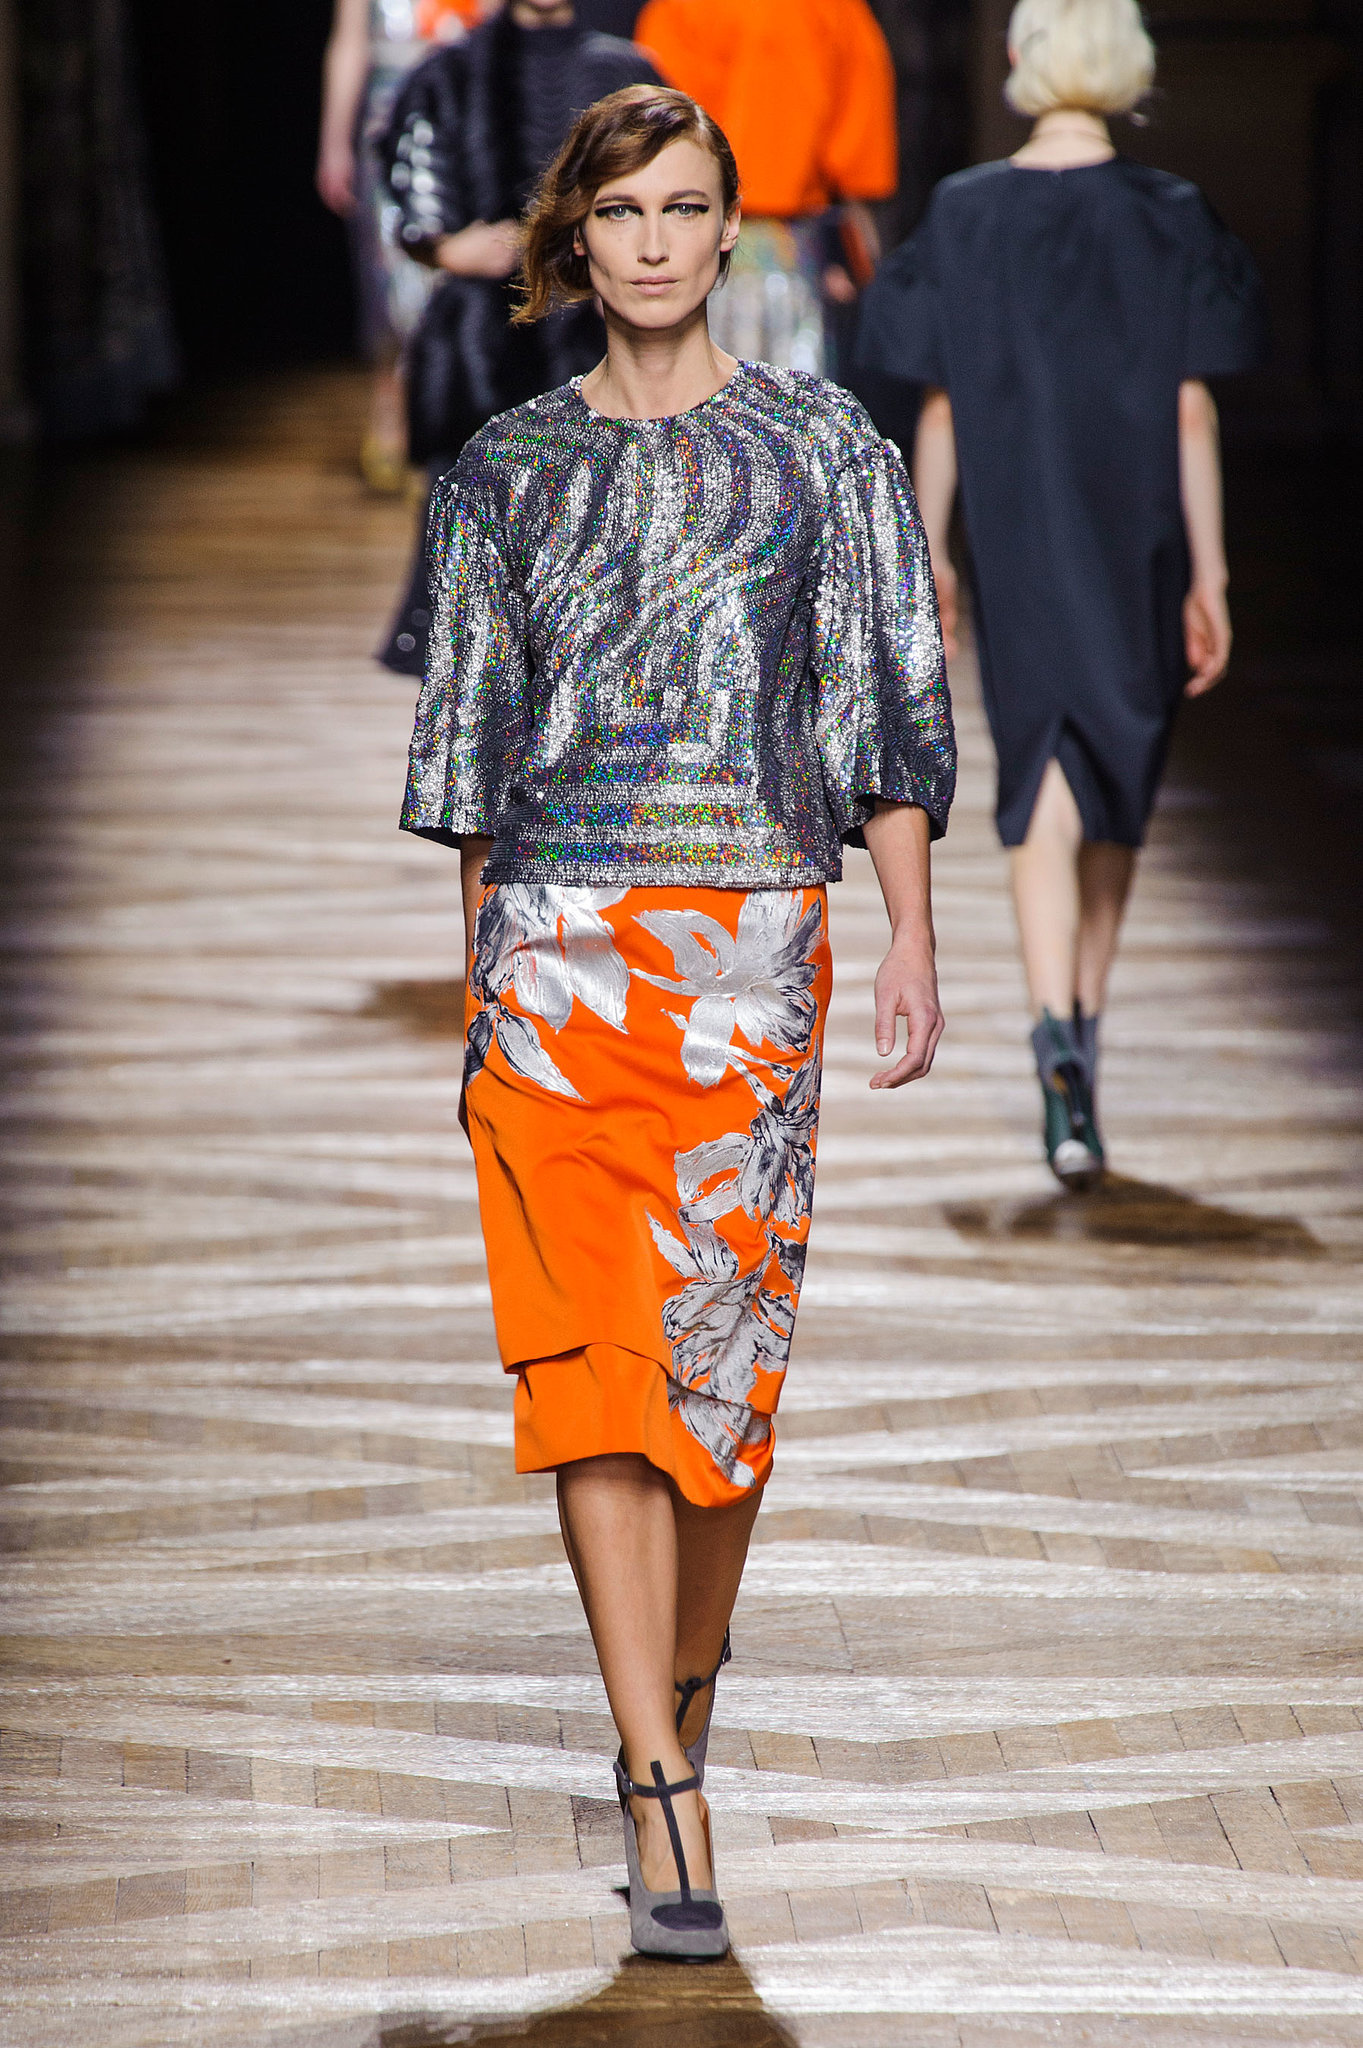 Dries Van Noten Fall 2014 | Dries Van Noten Got Pantone's Memo ...